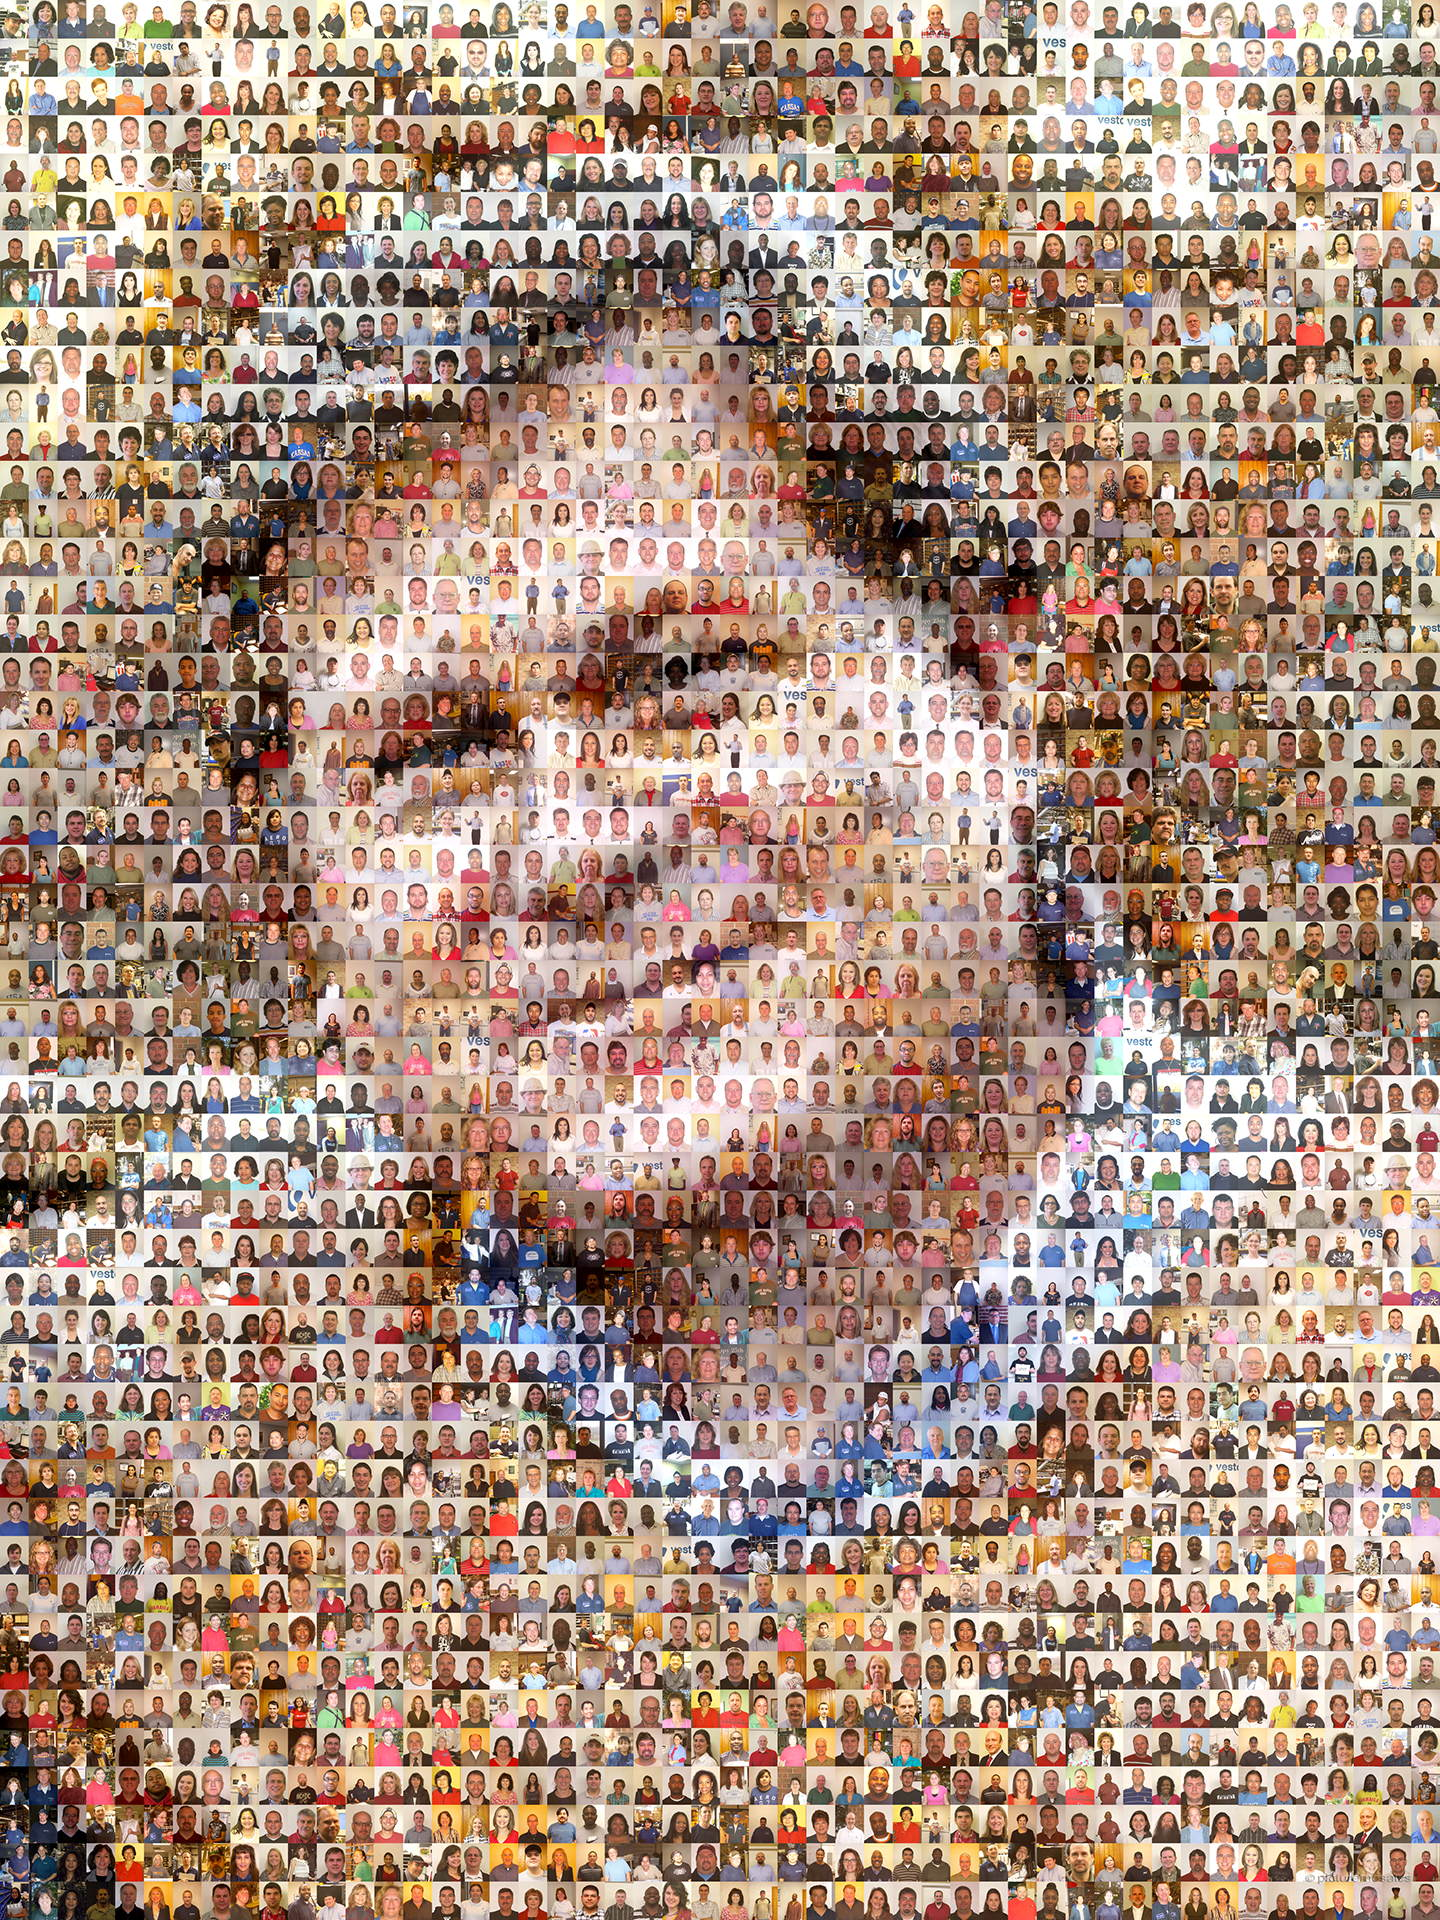 photo mosaic created using 956 company photos